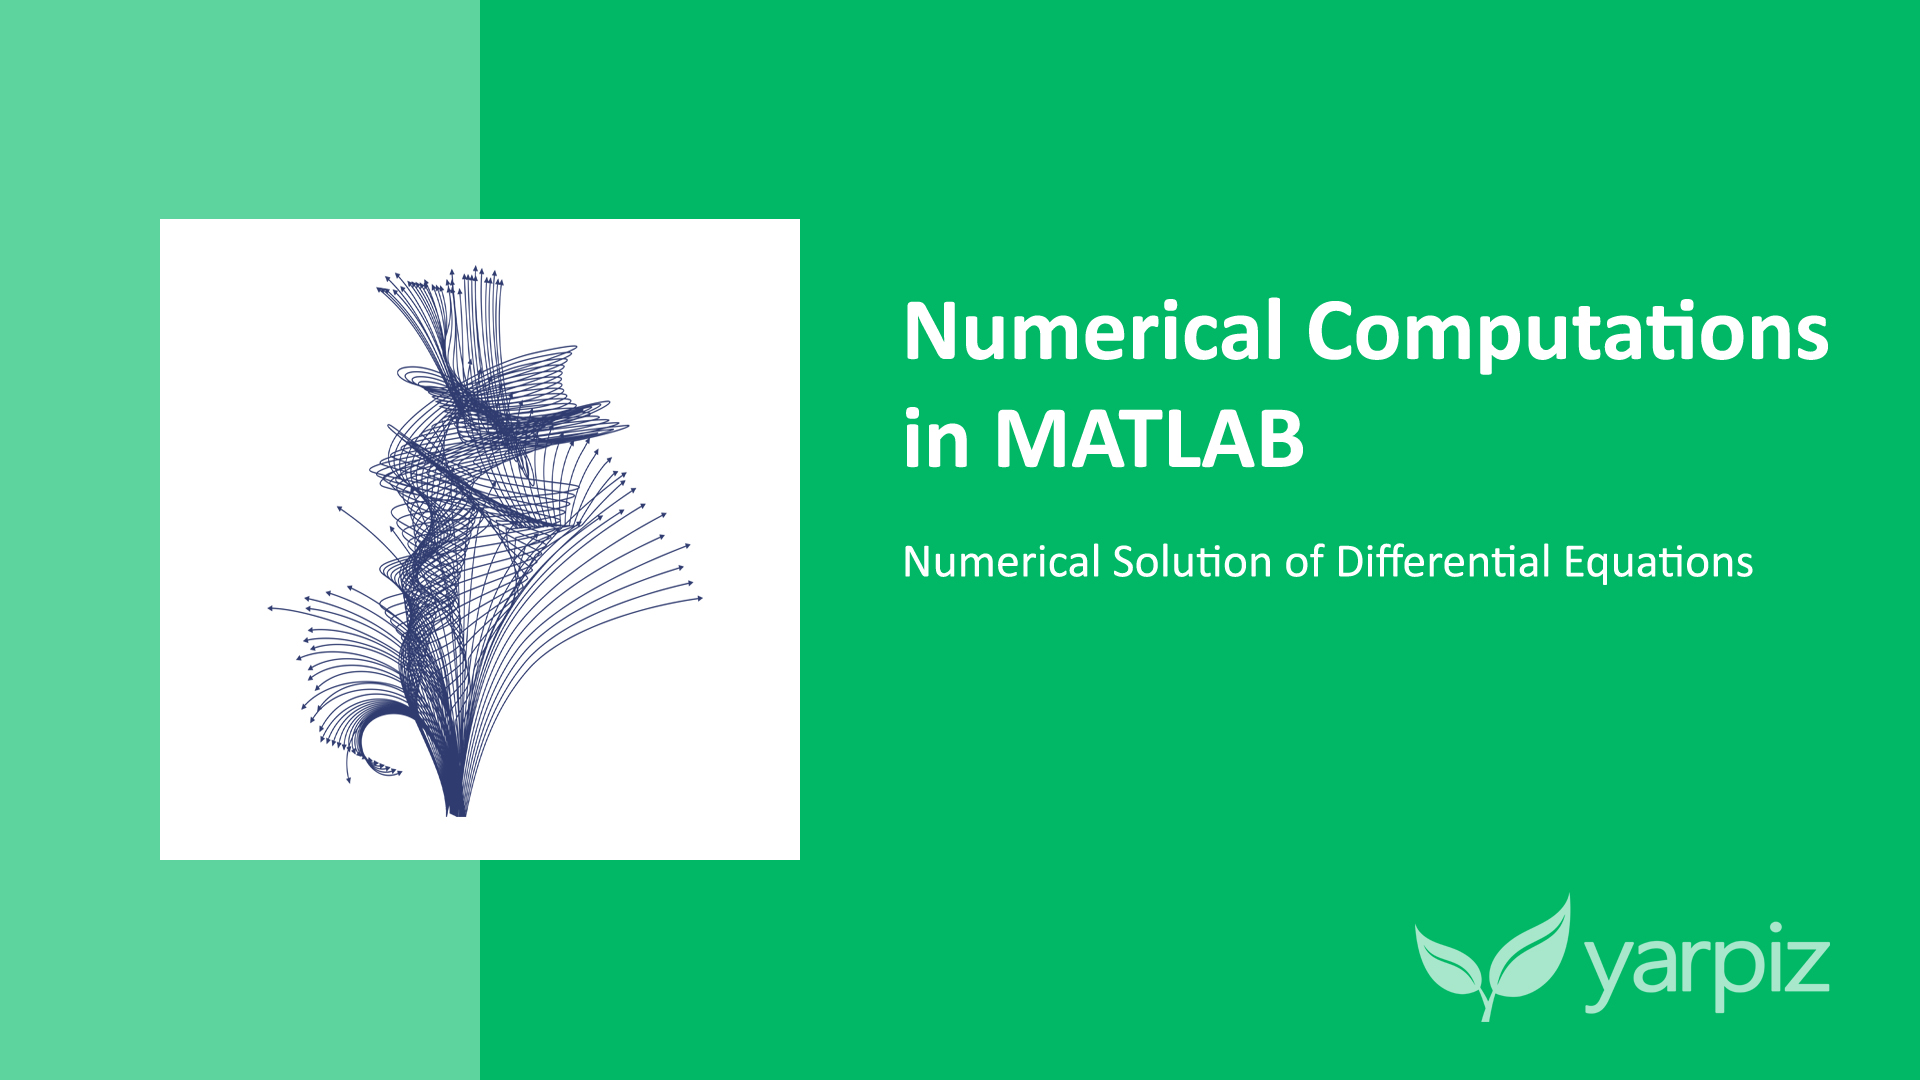 Numerical Computations in MATLAB: Numerical Solution of